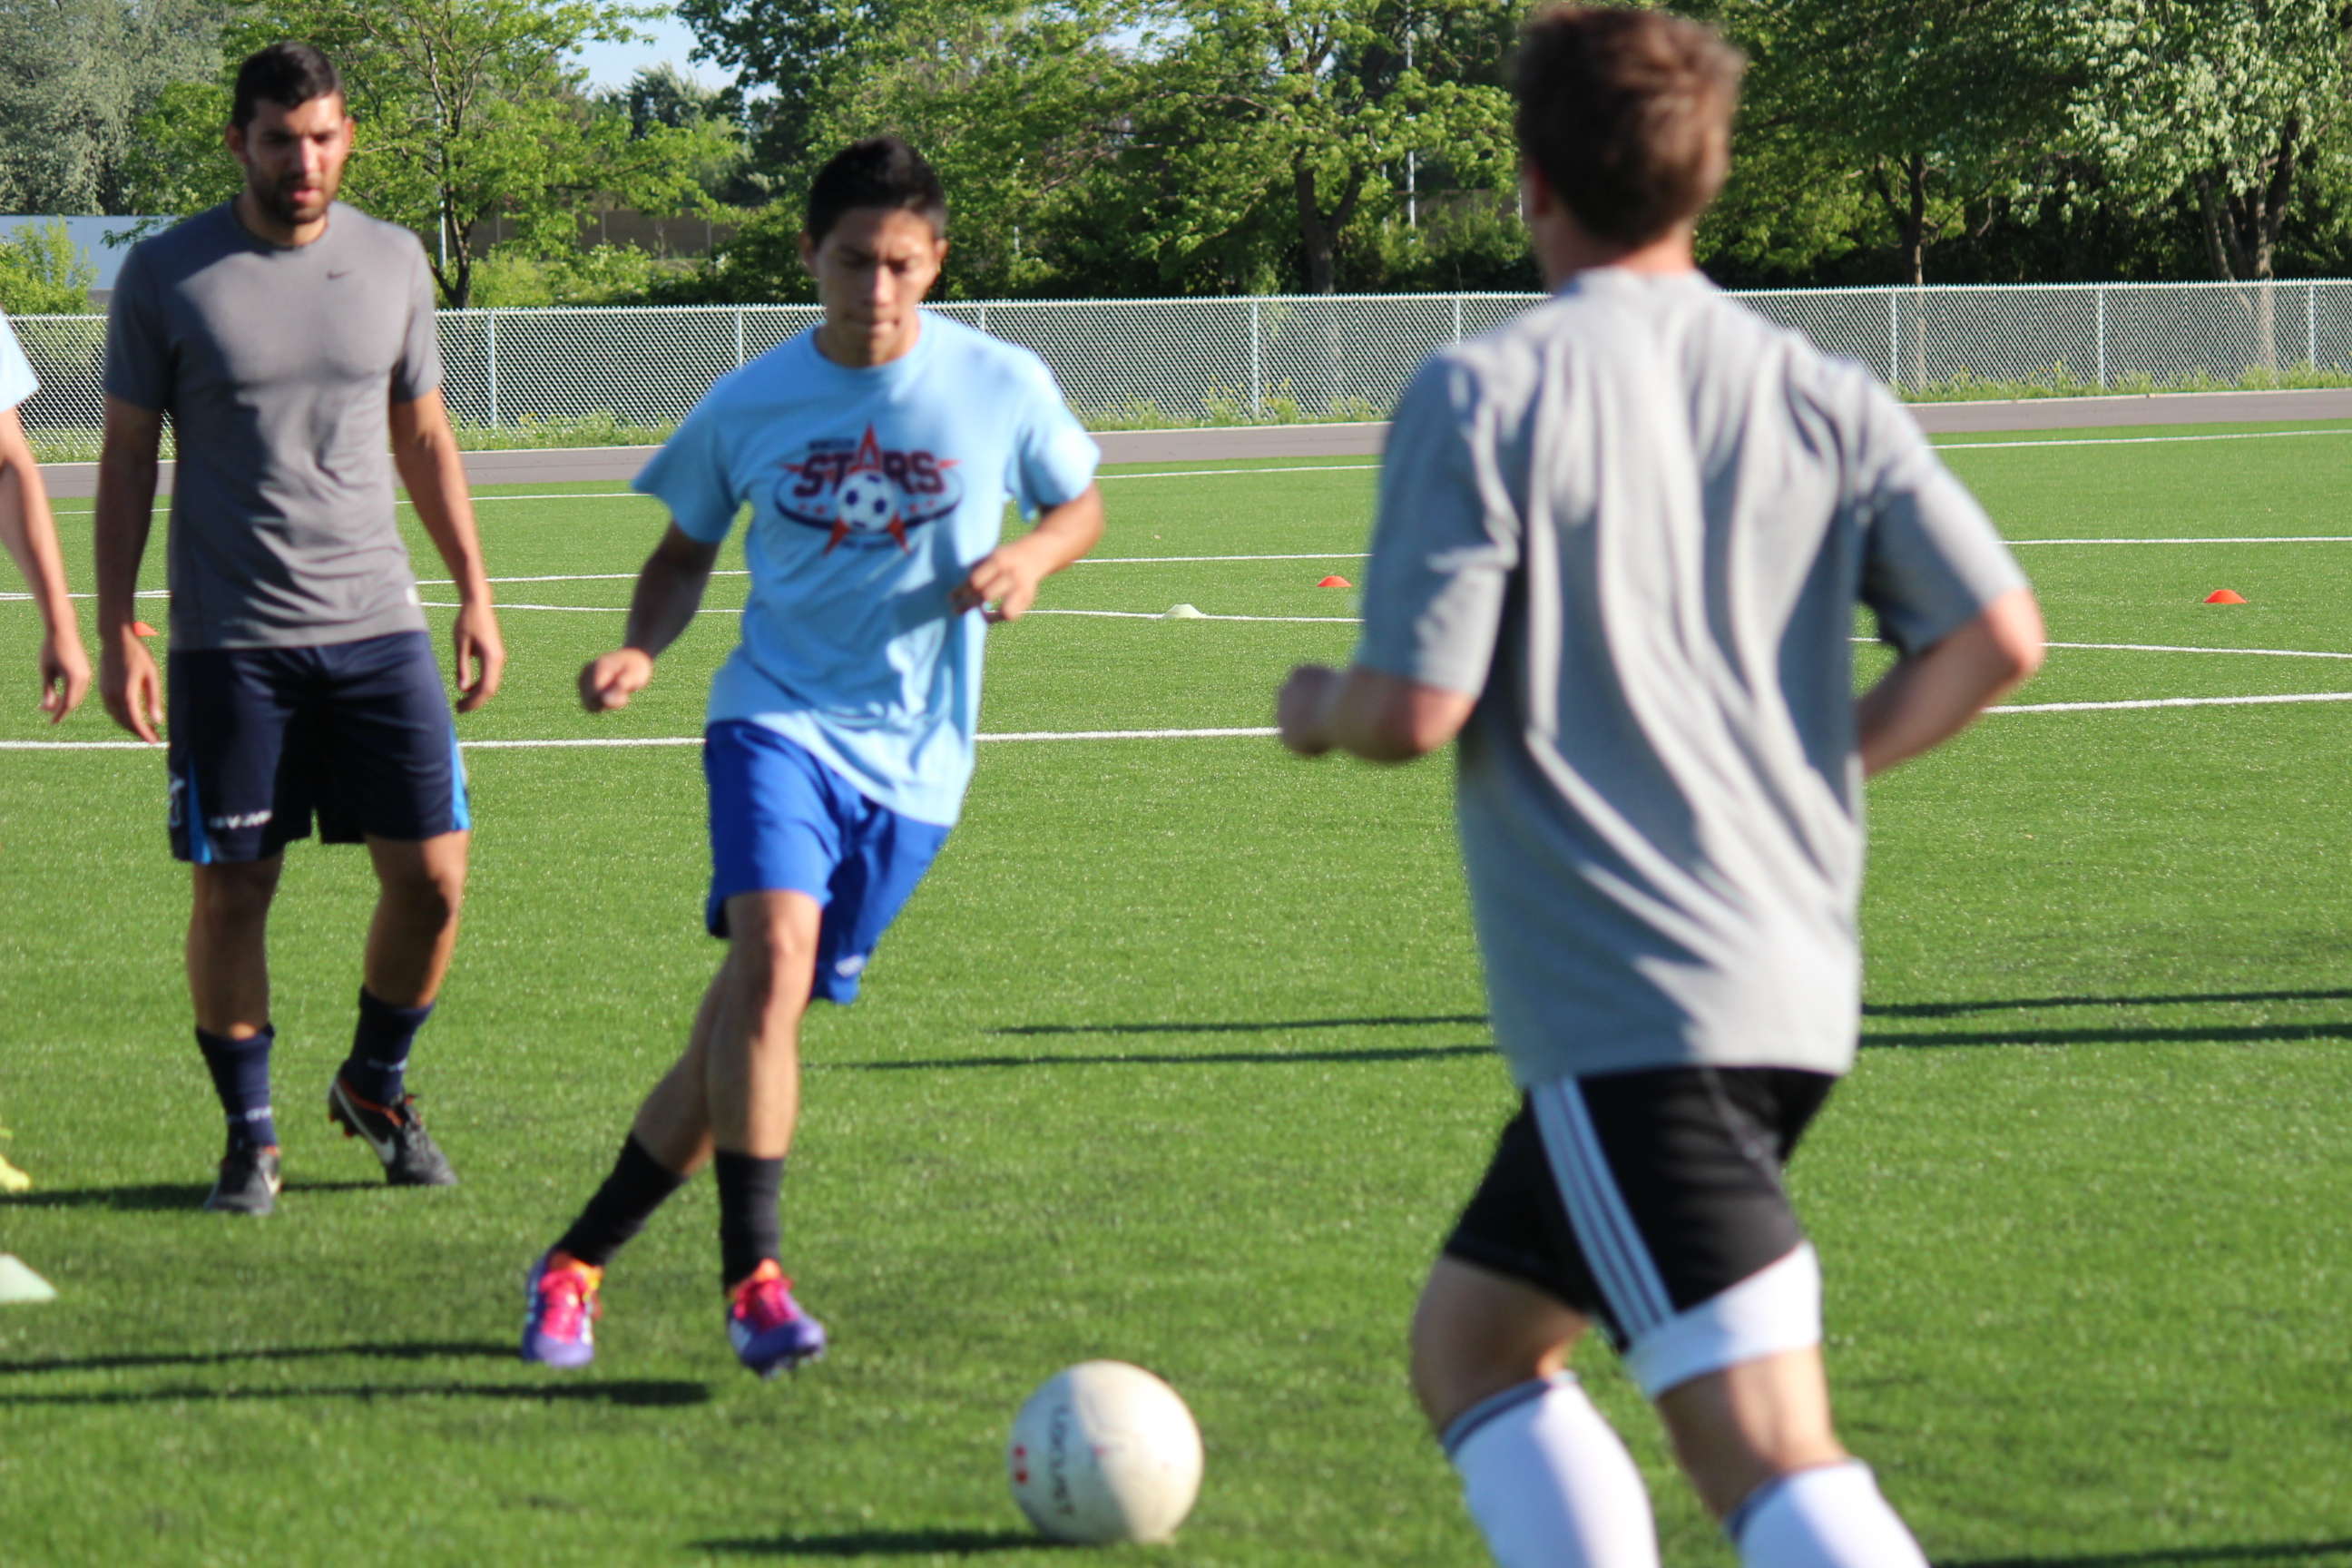 Windsor Stars players practice at Academy Ste. Cecile in Windsor's west end on June 3, 2014. (Photo by Ricardo Veneza)